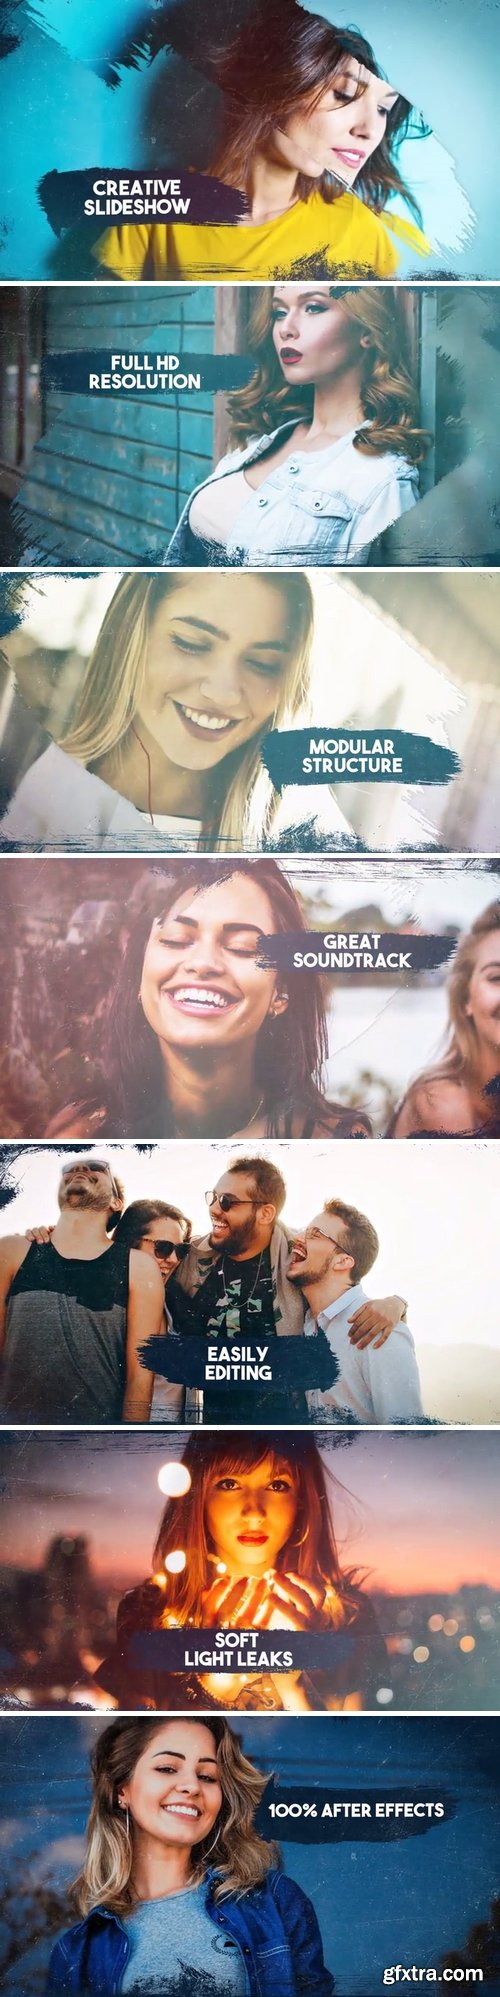 MotionArray - Creative Slideshow After Effects Templates 159767